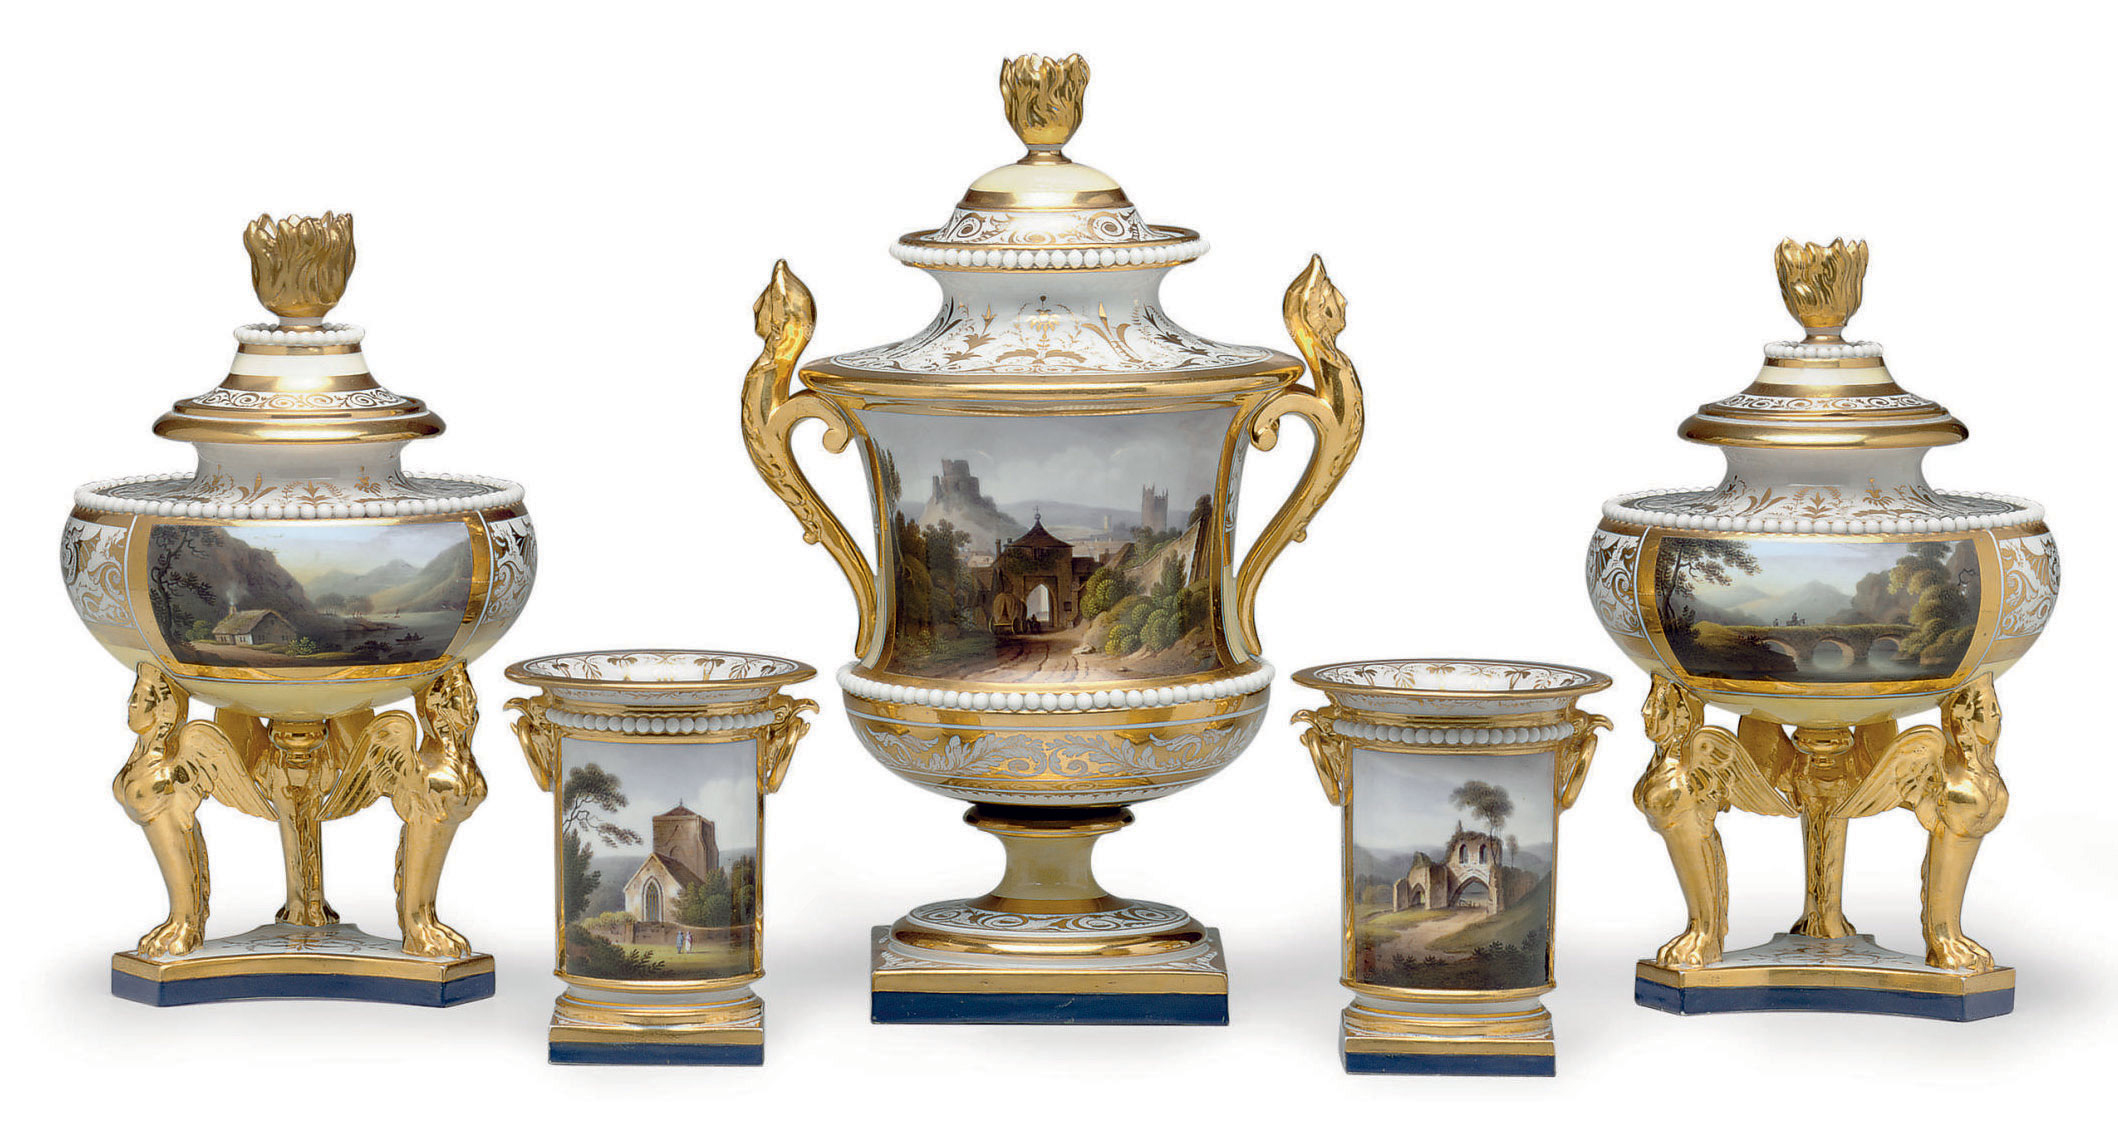 A WORCESTER (FLIGHT, BARR & BARR) PORCELAIN PALE-YELLOW GROUND TOPOGRAPHICAL FIVE-PIECE GARNITURE